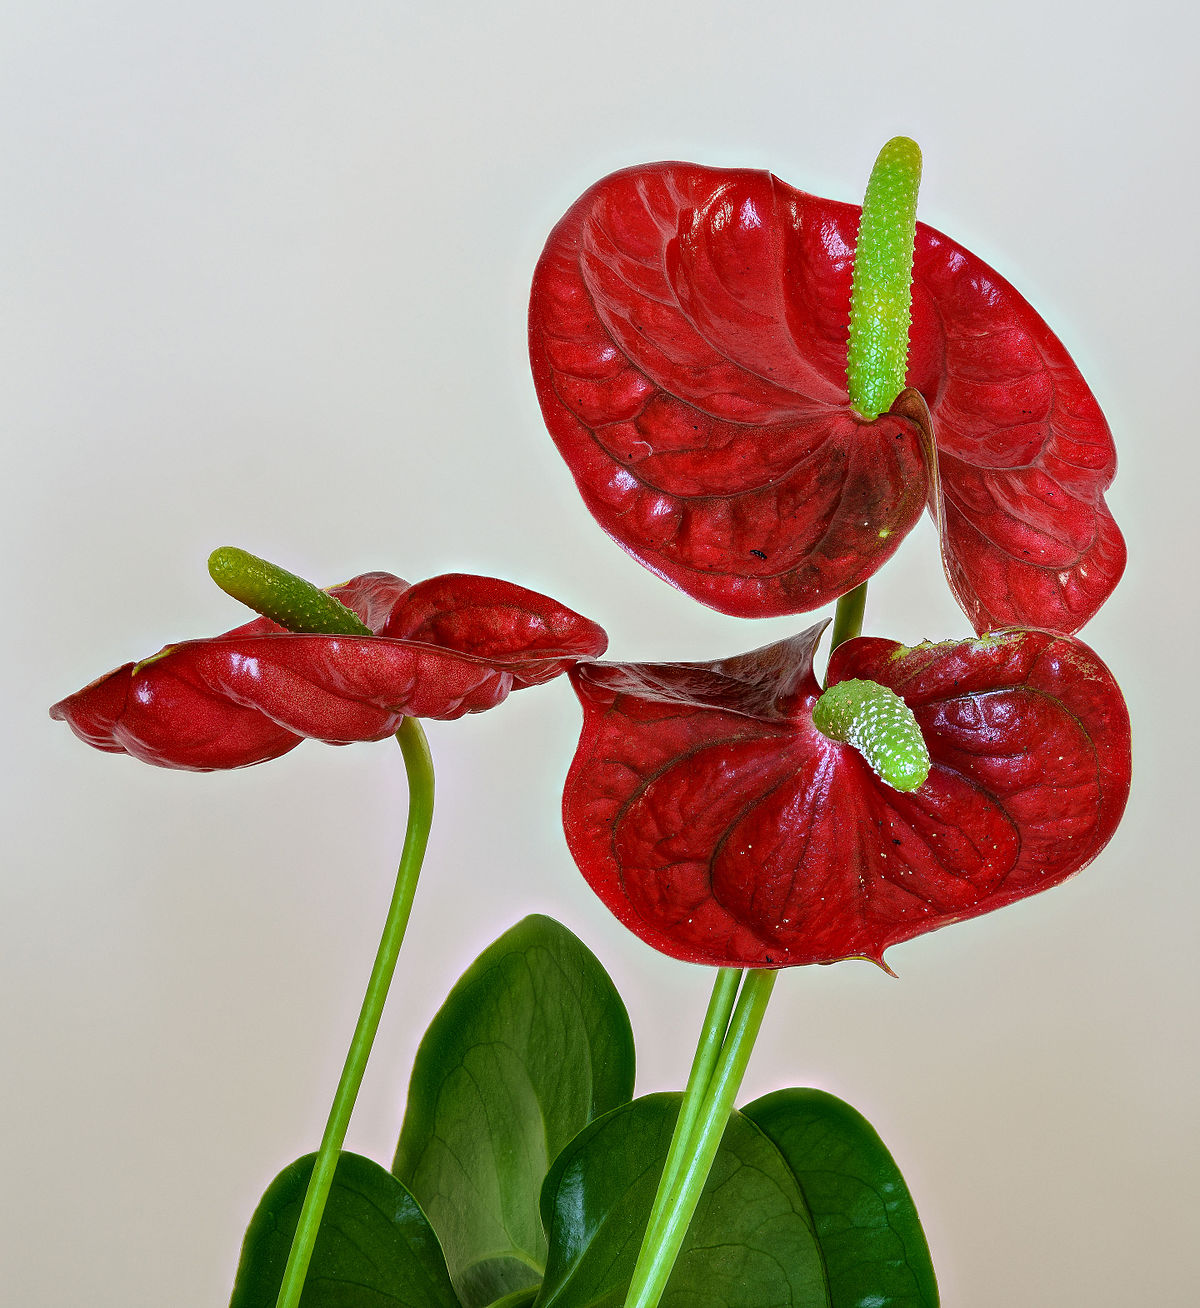 Anthurium - Wikipedia